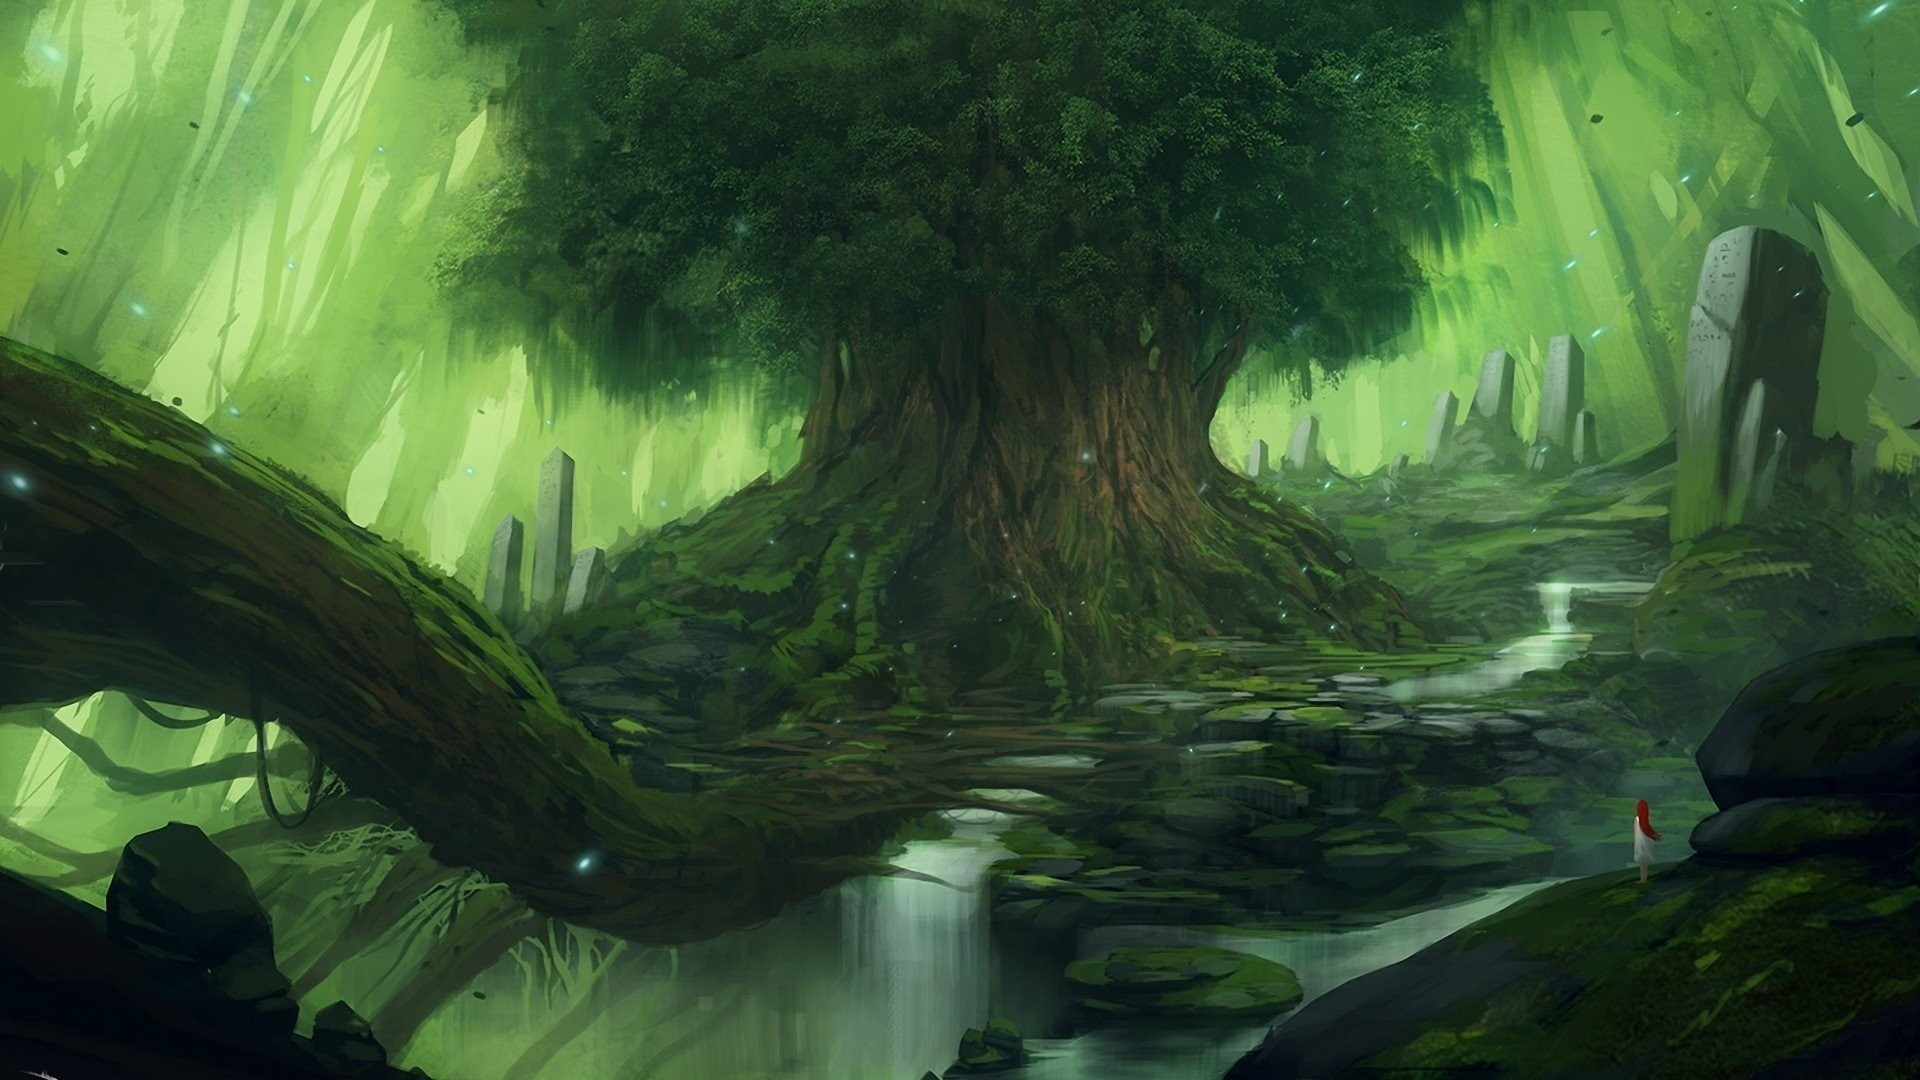 Res: 1920x1080, Fantasy Forest Wallpapers 7 - 1920 X 1080